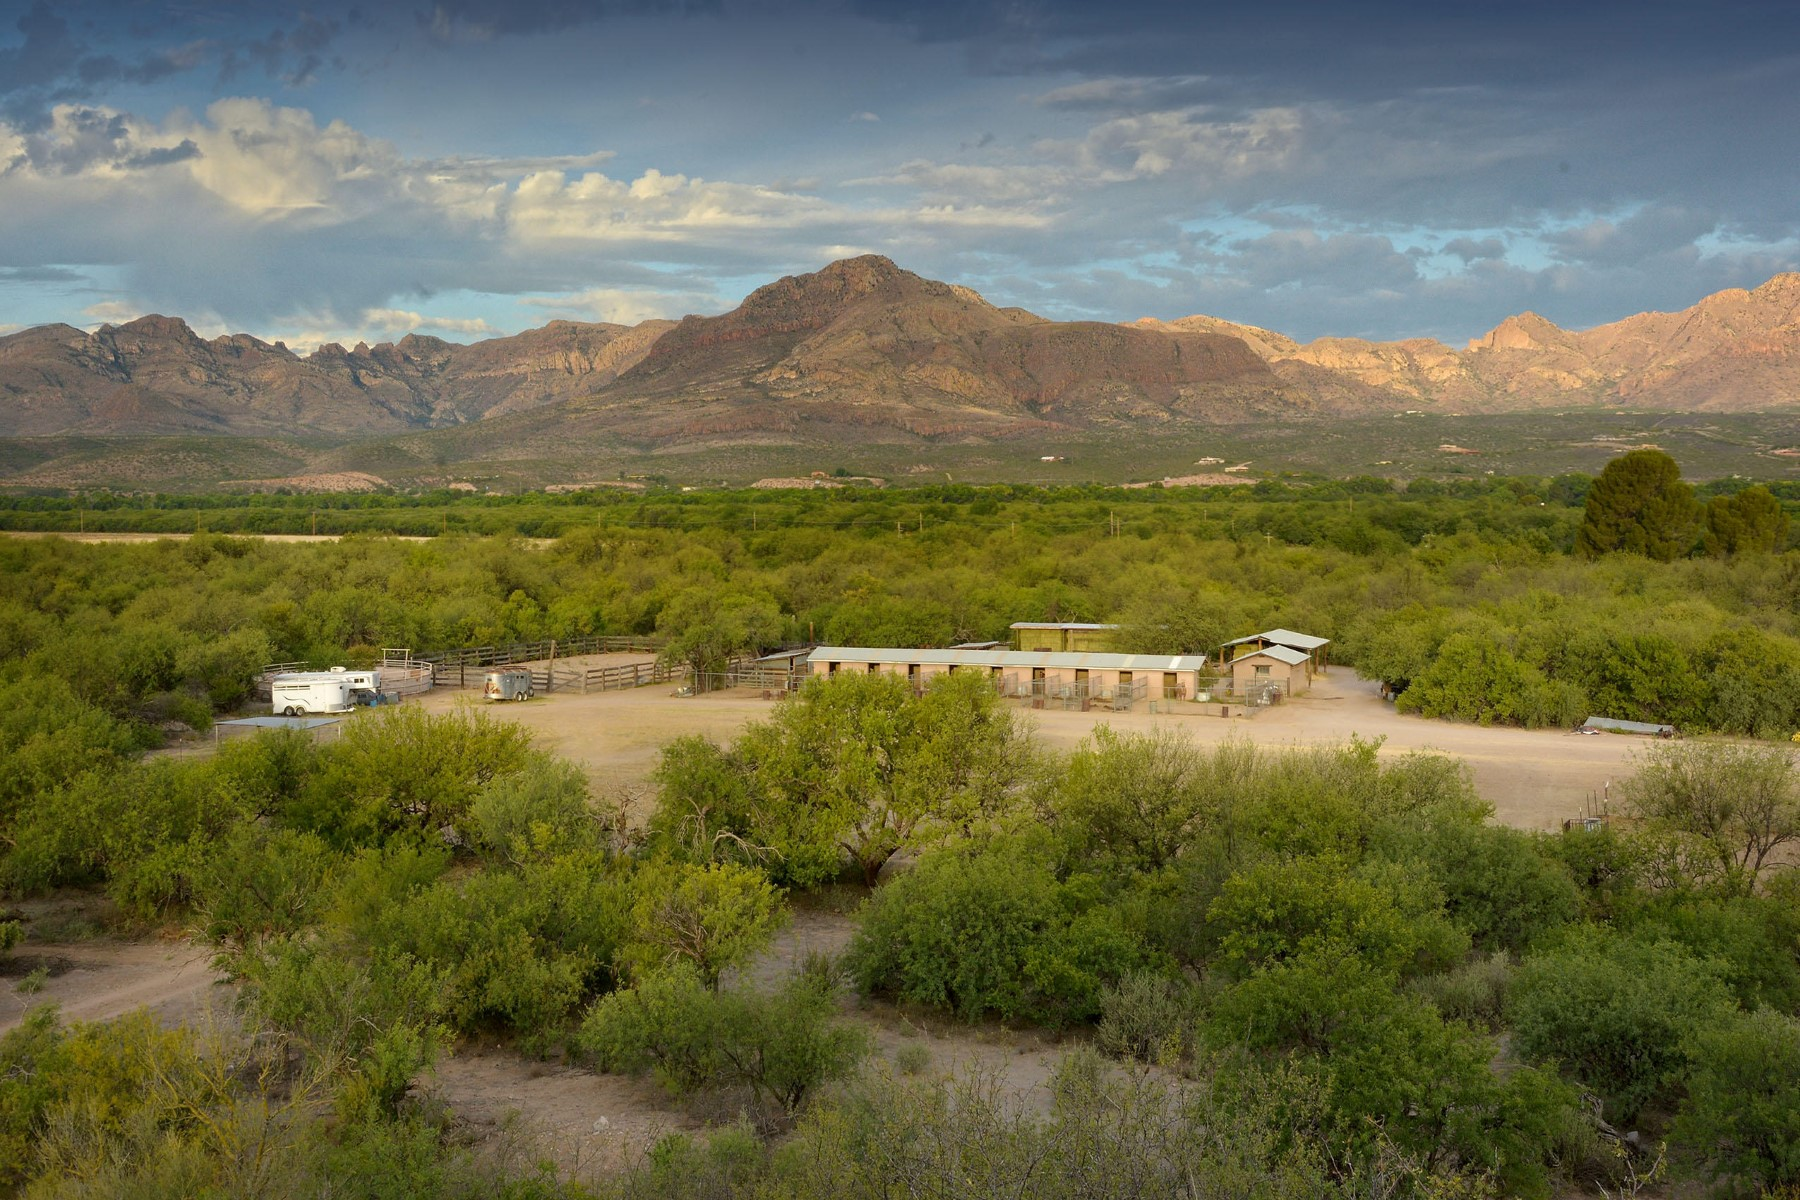 Casa Unifamiliar por un Venta en Classic South Arizona Ranch situated on 91.7 acres near Tubac 87 CLARK CROSSING Road Tubac, Arizona 85646 Estados Unidos